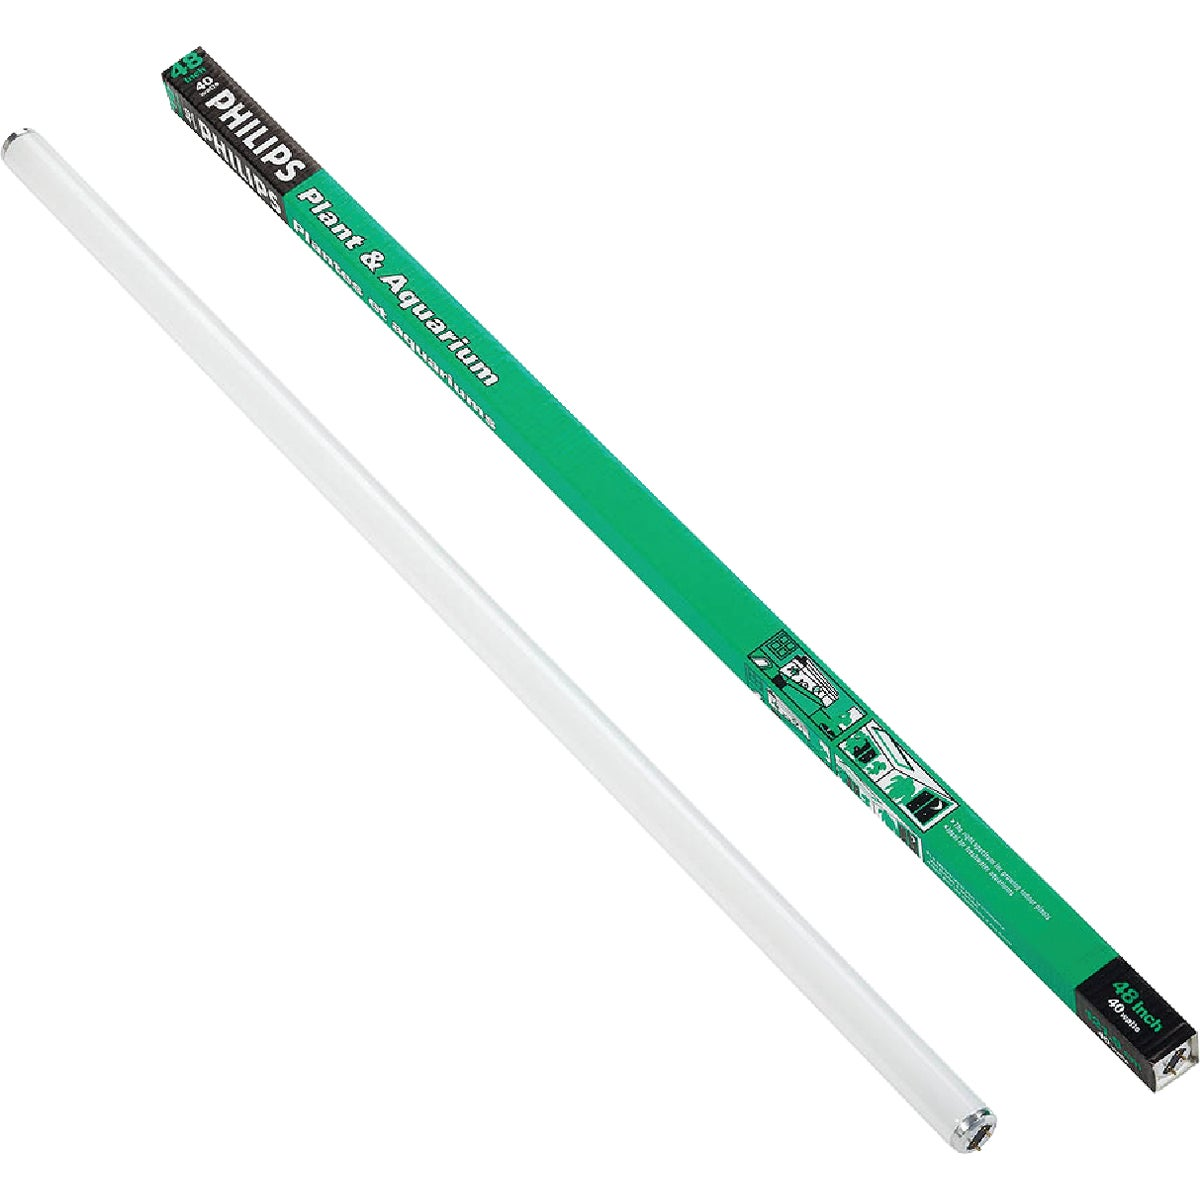 40W PLANT/AQUARIUM TUBE - 49893 F40PL/AQ by G E Lighting